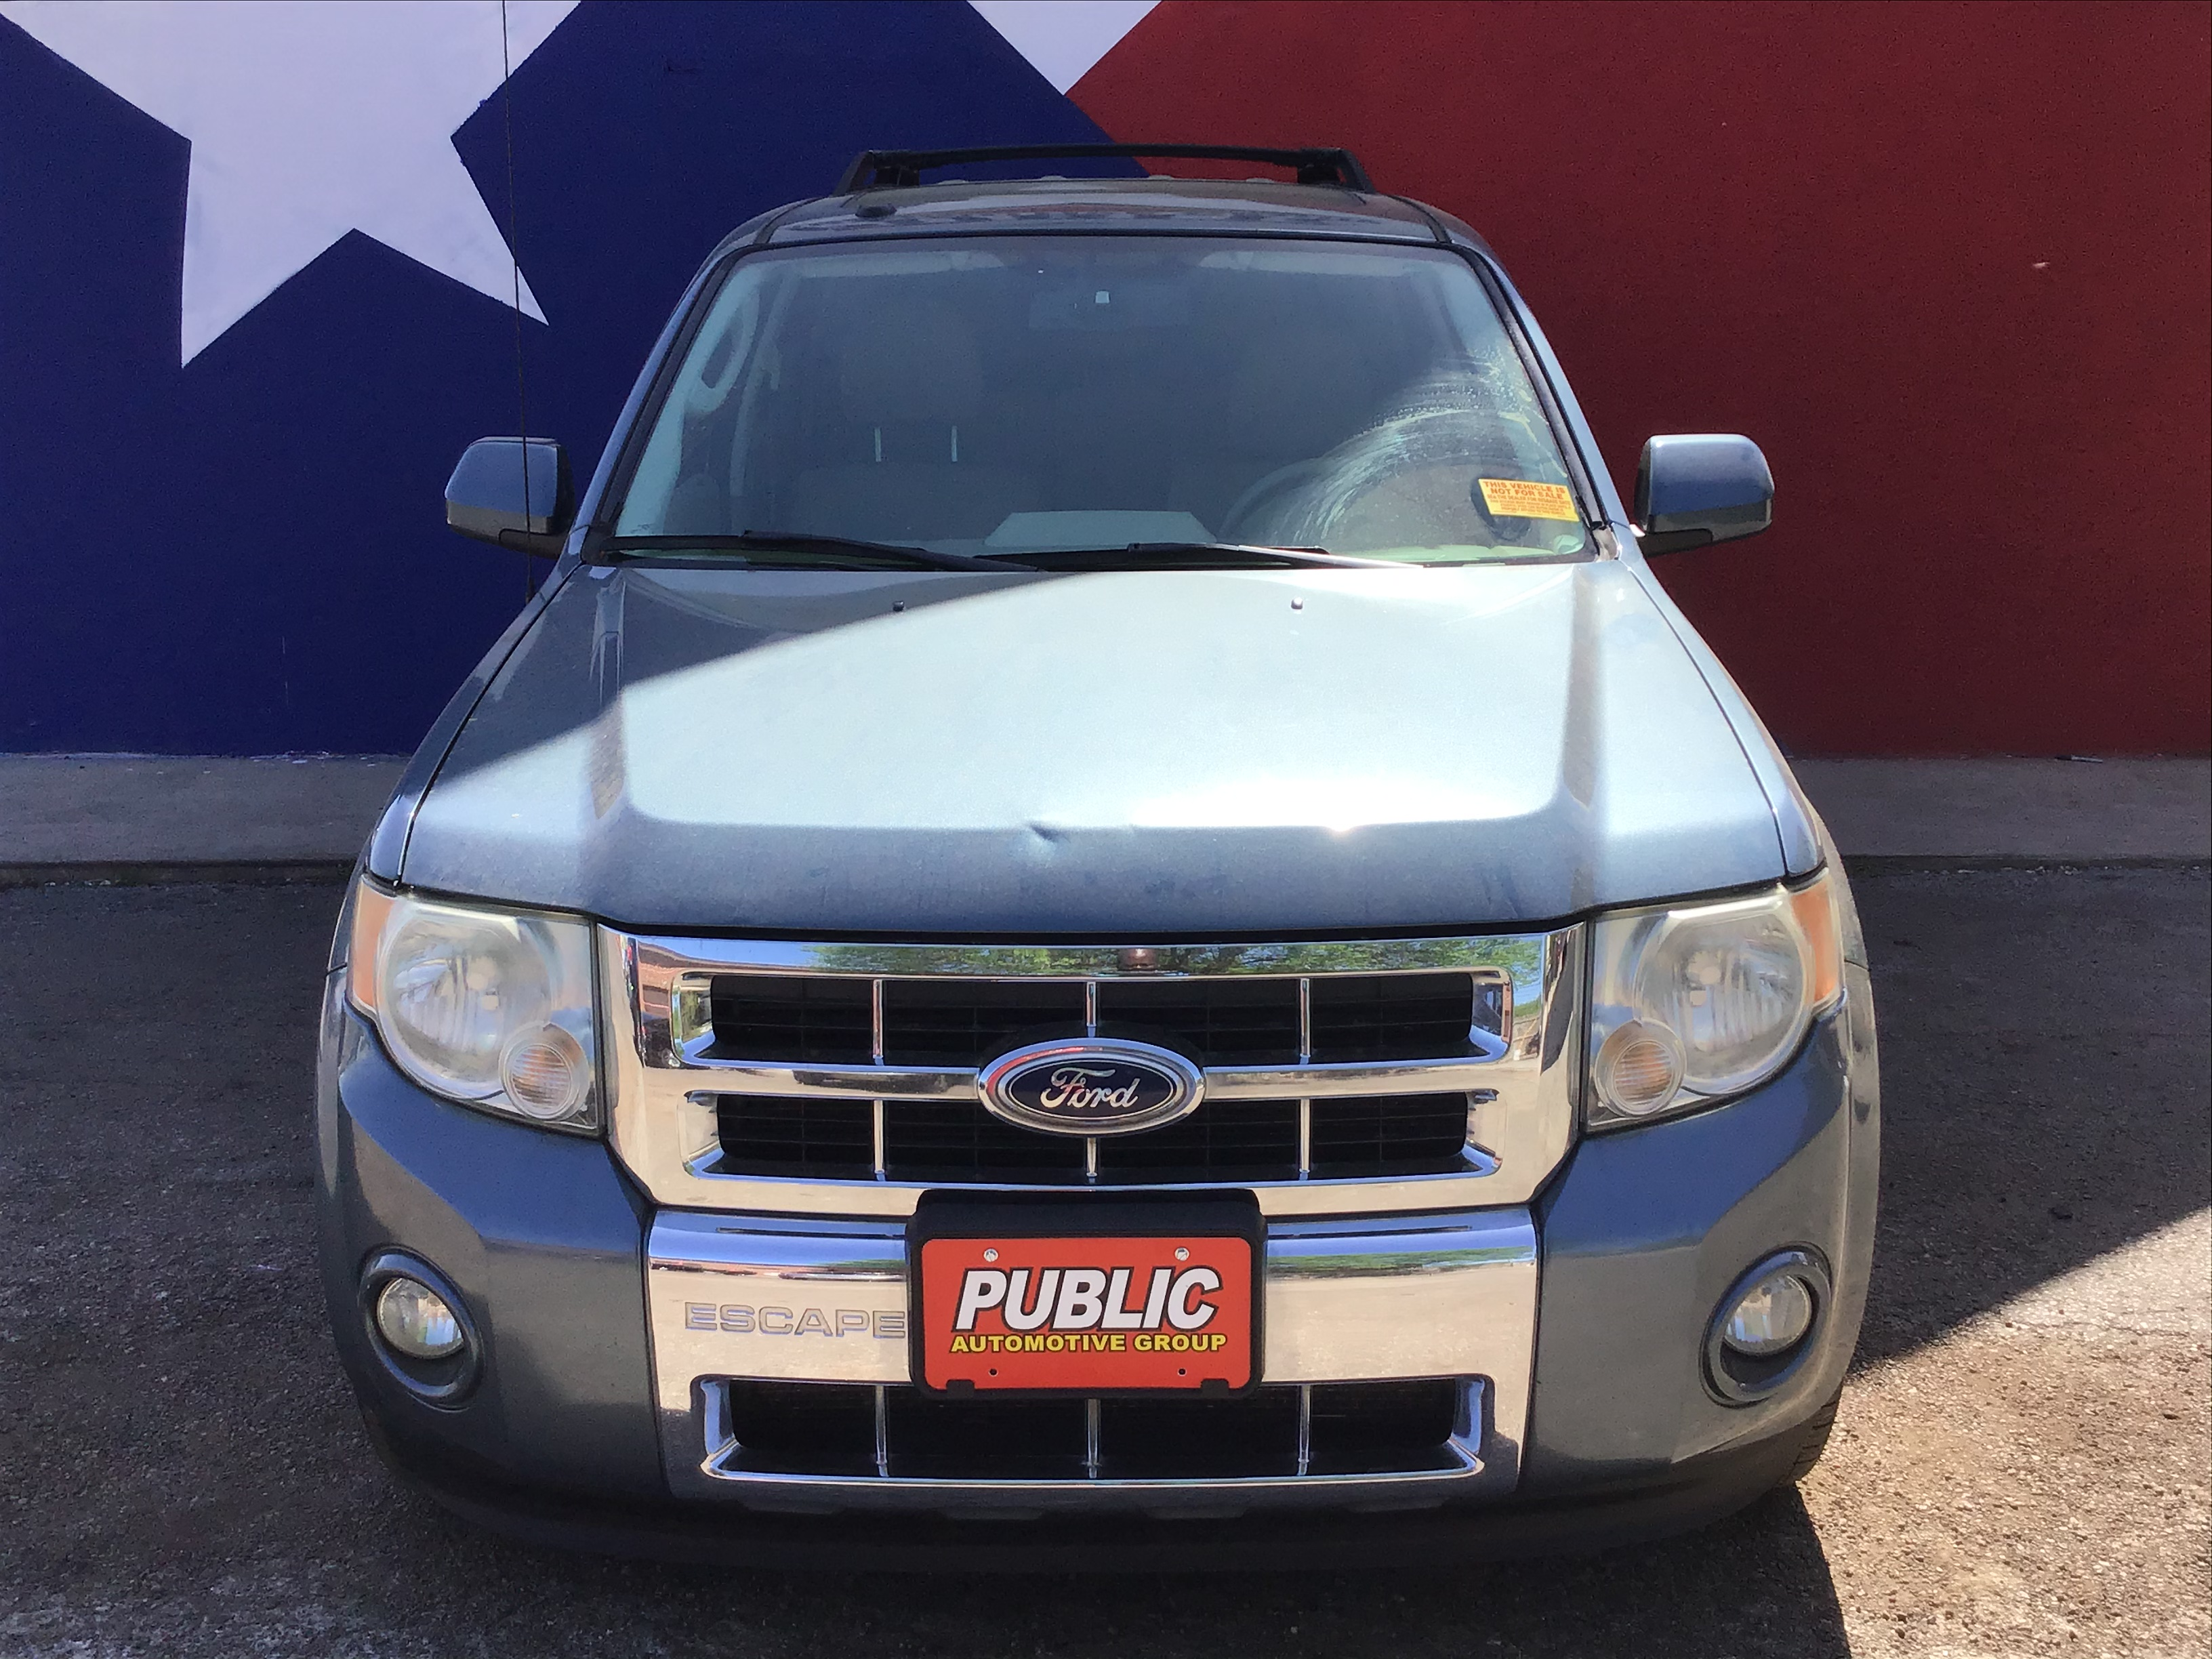 used vehicle - SUV FORD ESCAPE 2010